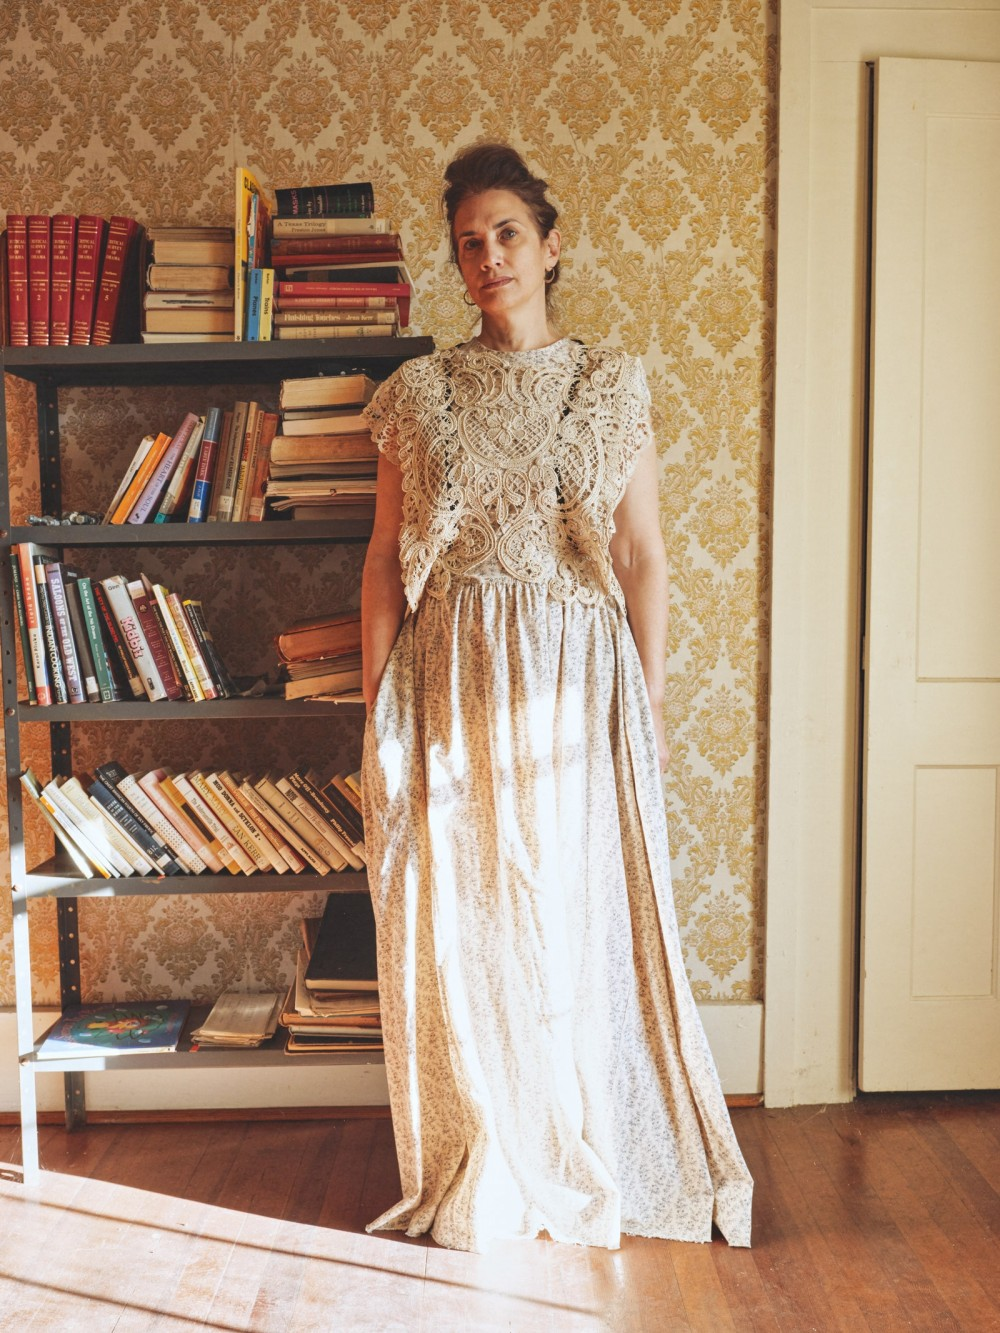 Image may contain Furniture Shelf Bookcase Human Person Clothing Apparel Evening Dress Fashion Gown Robe and Wood